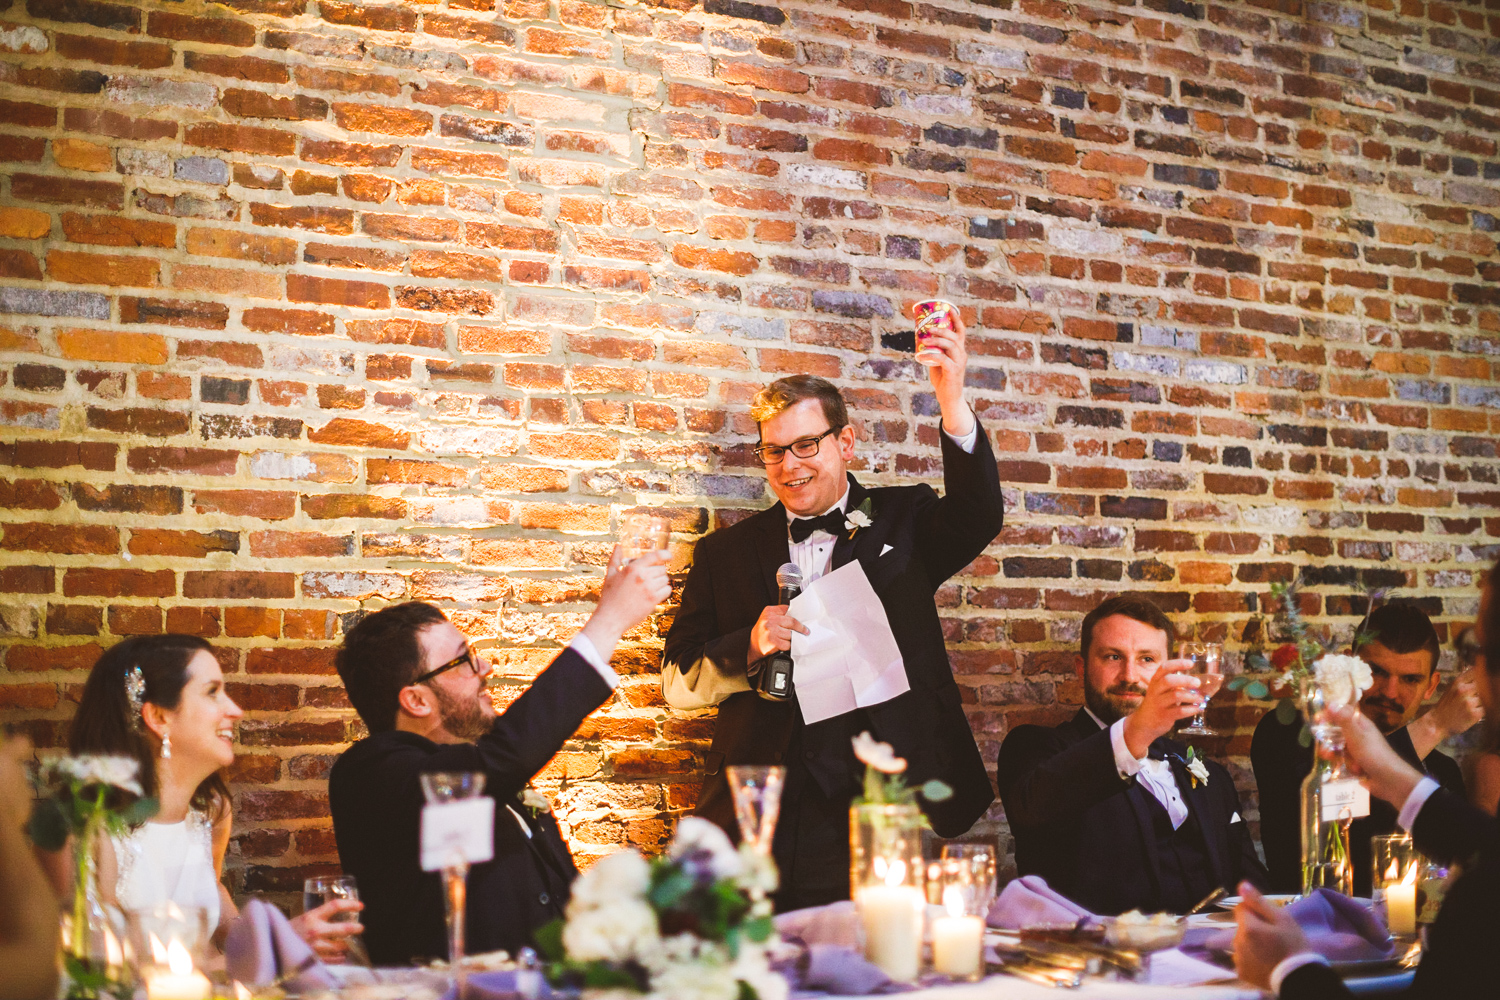 045 - best man toasts the groom at the american visionary arts museum.jpg